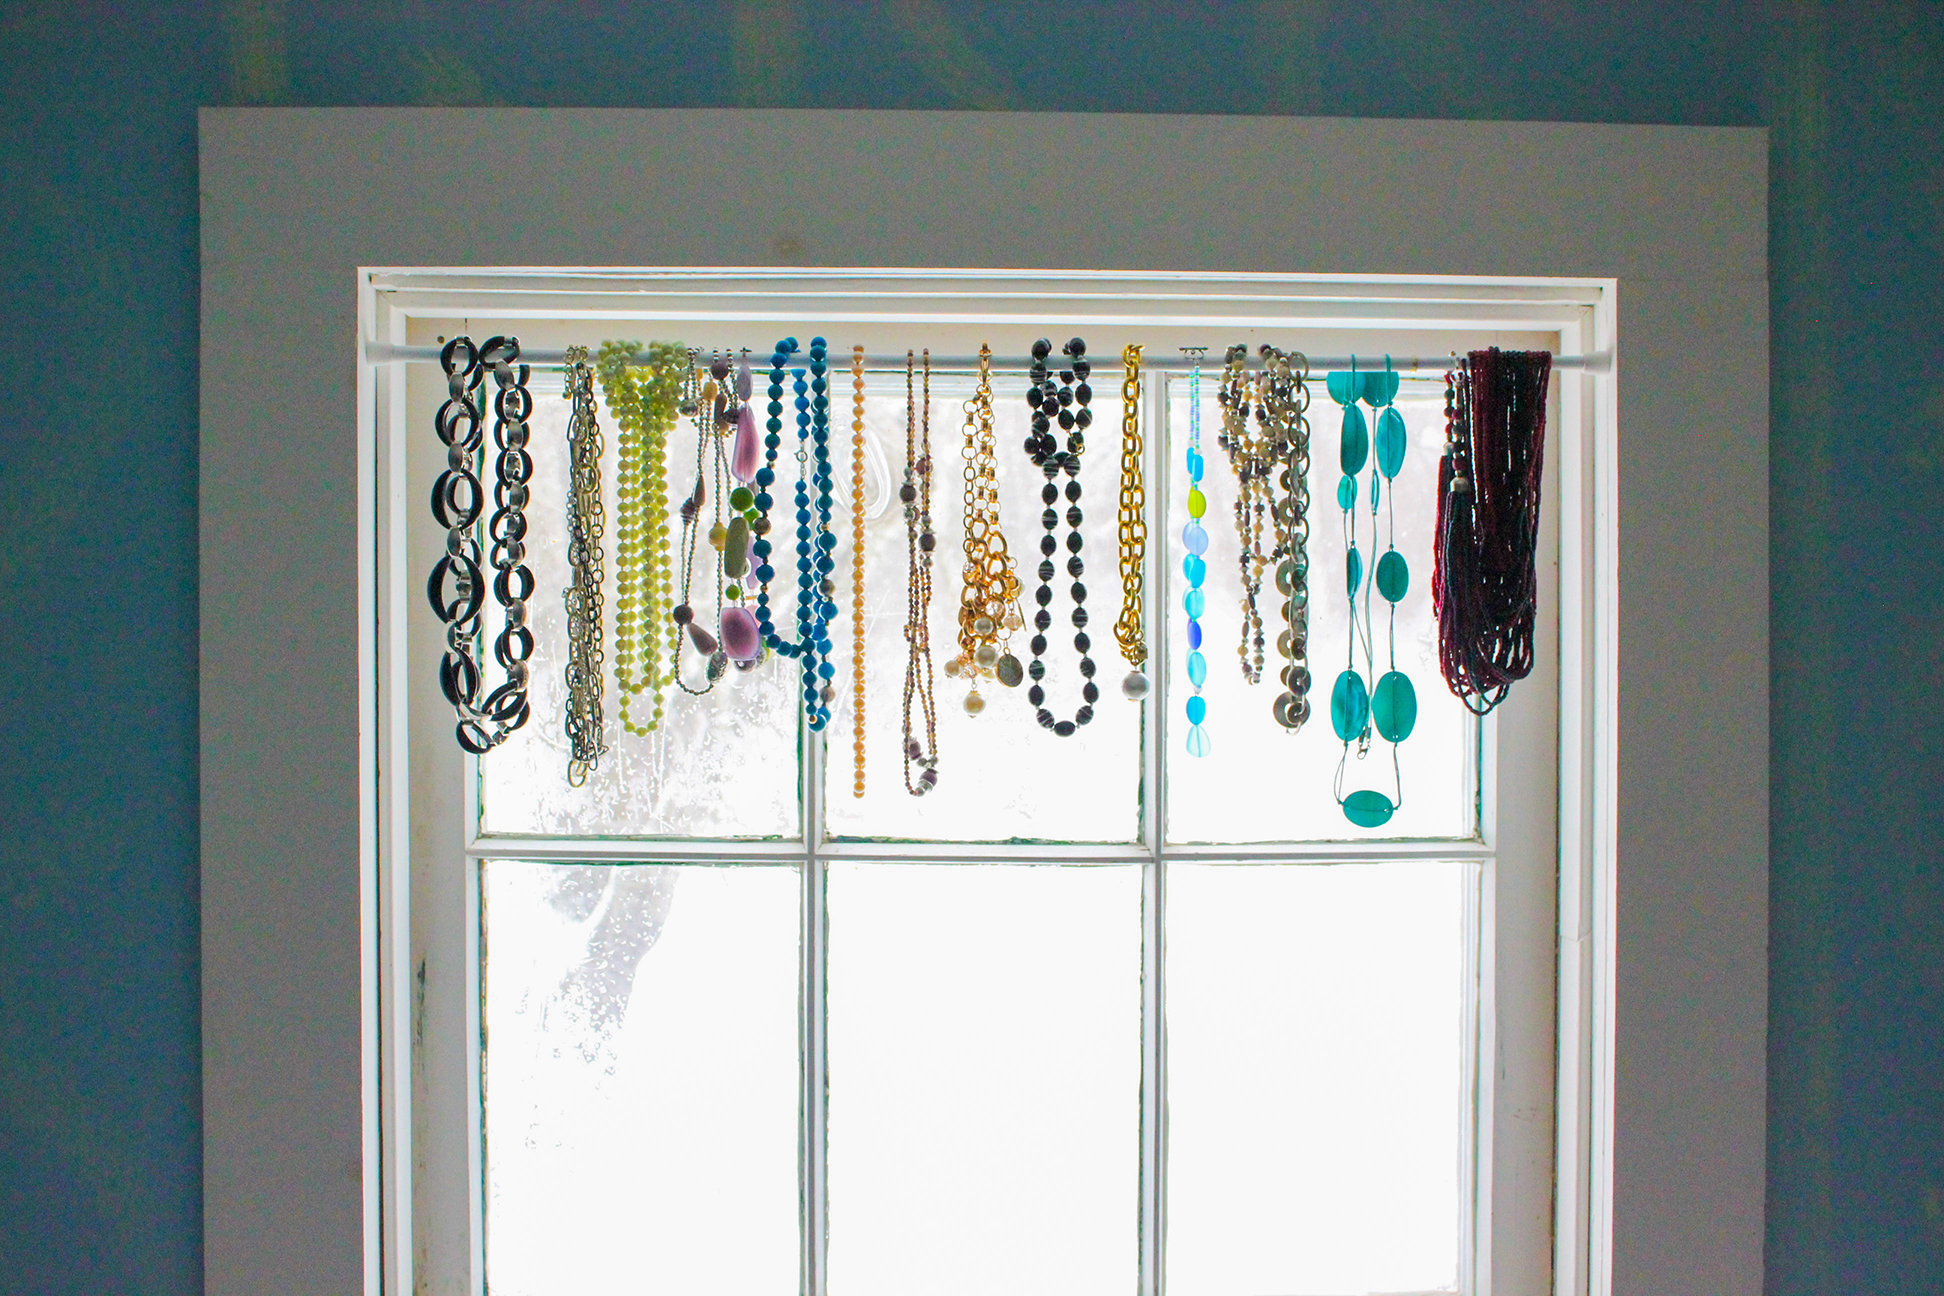 Unique window treatments - No Sew Window Treatments From Your Closet With Ahrn Com